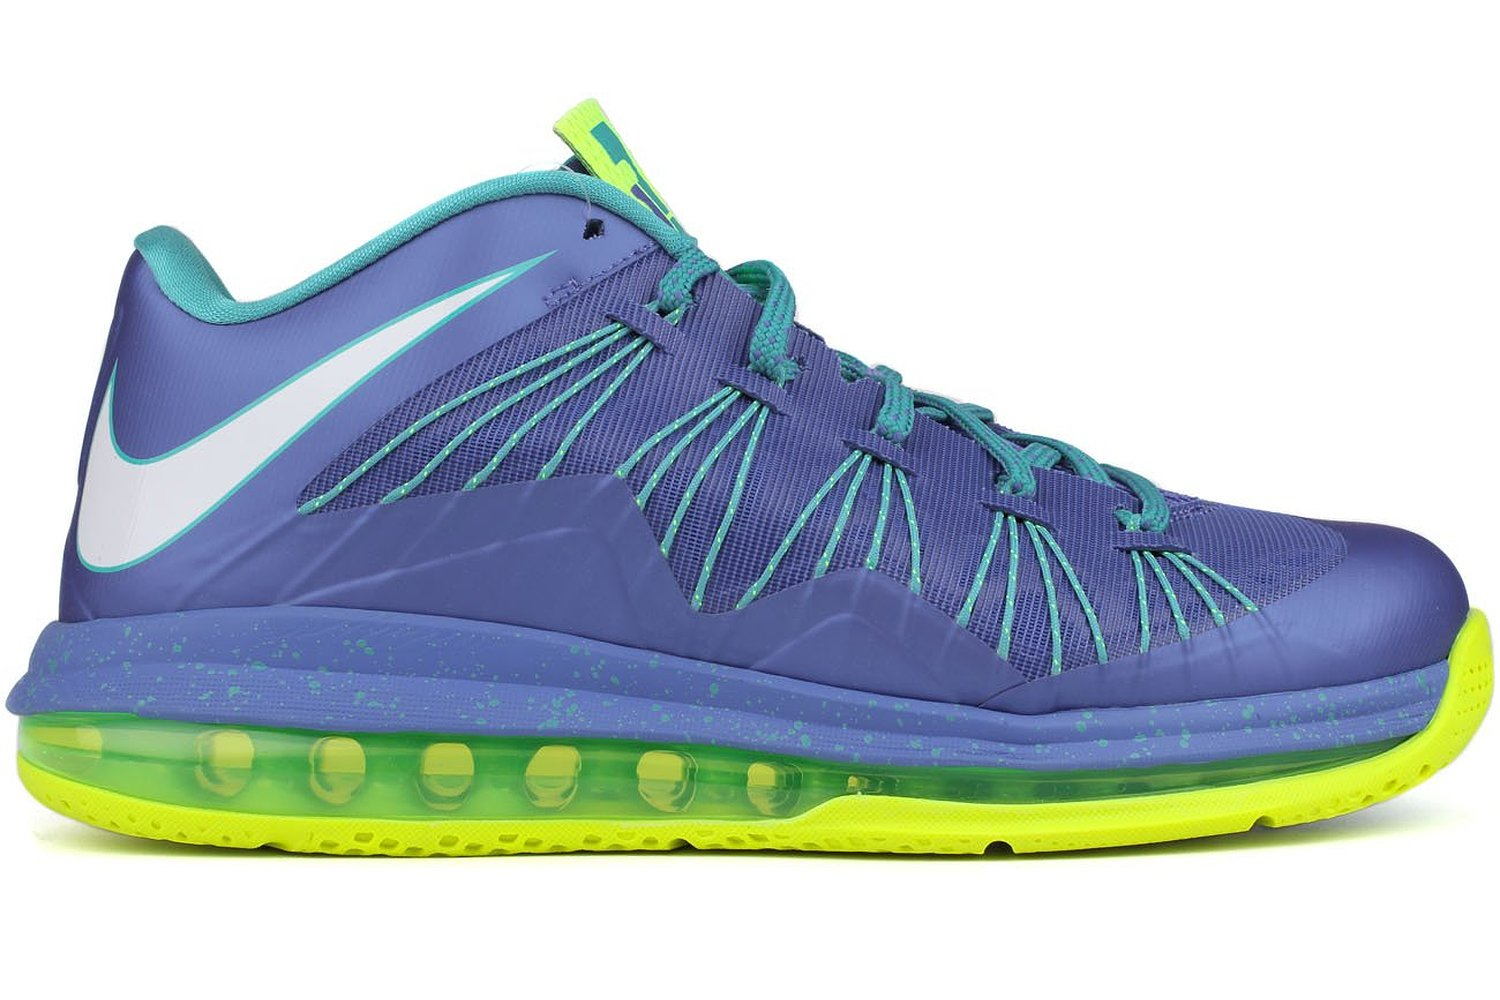 outlet store 26ca4 c94cf Get Quotations · Nike Air Max Lebron X Low